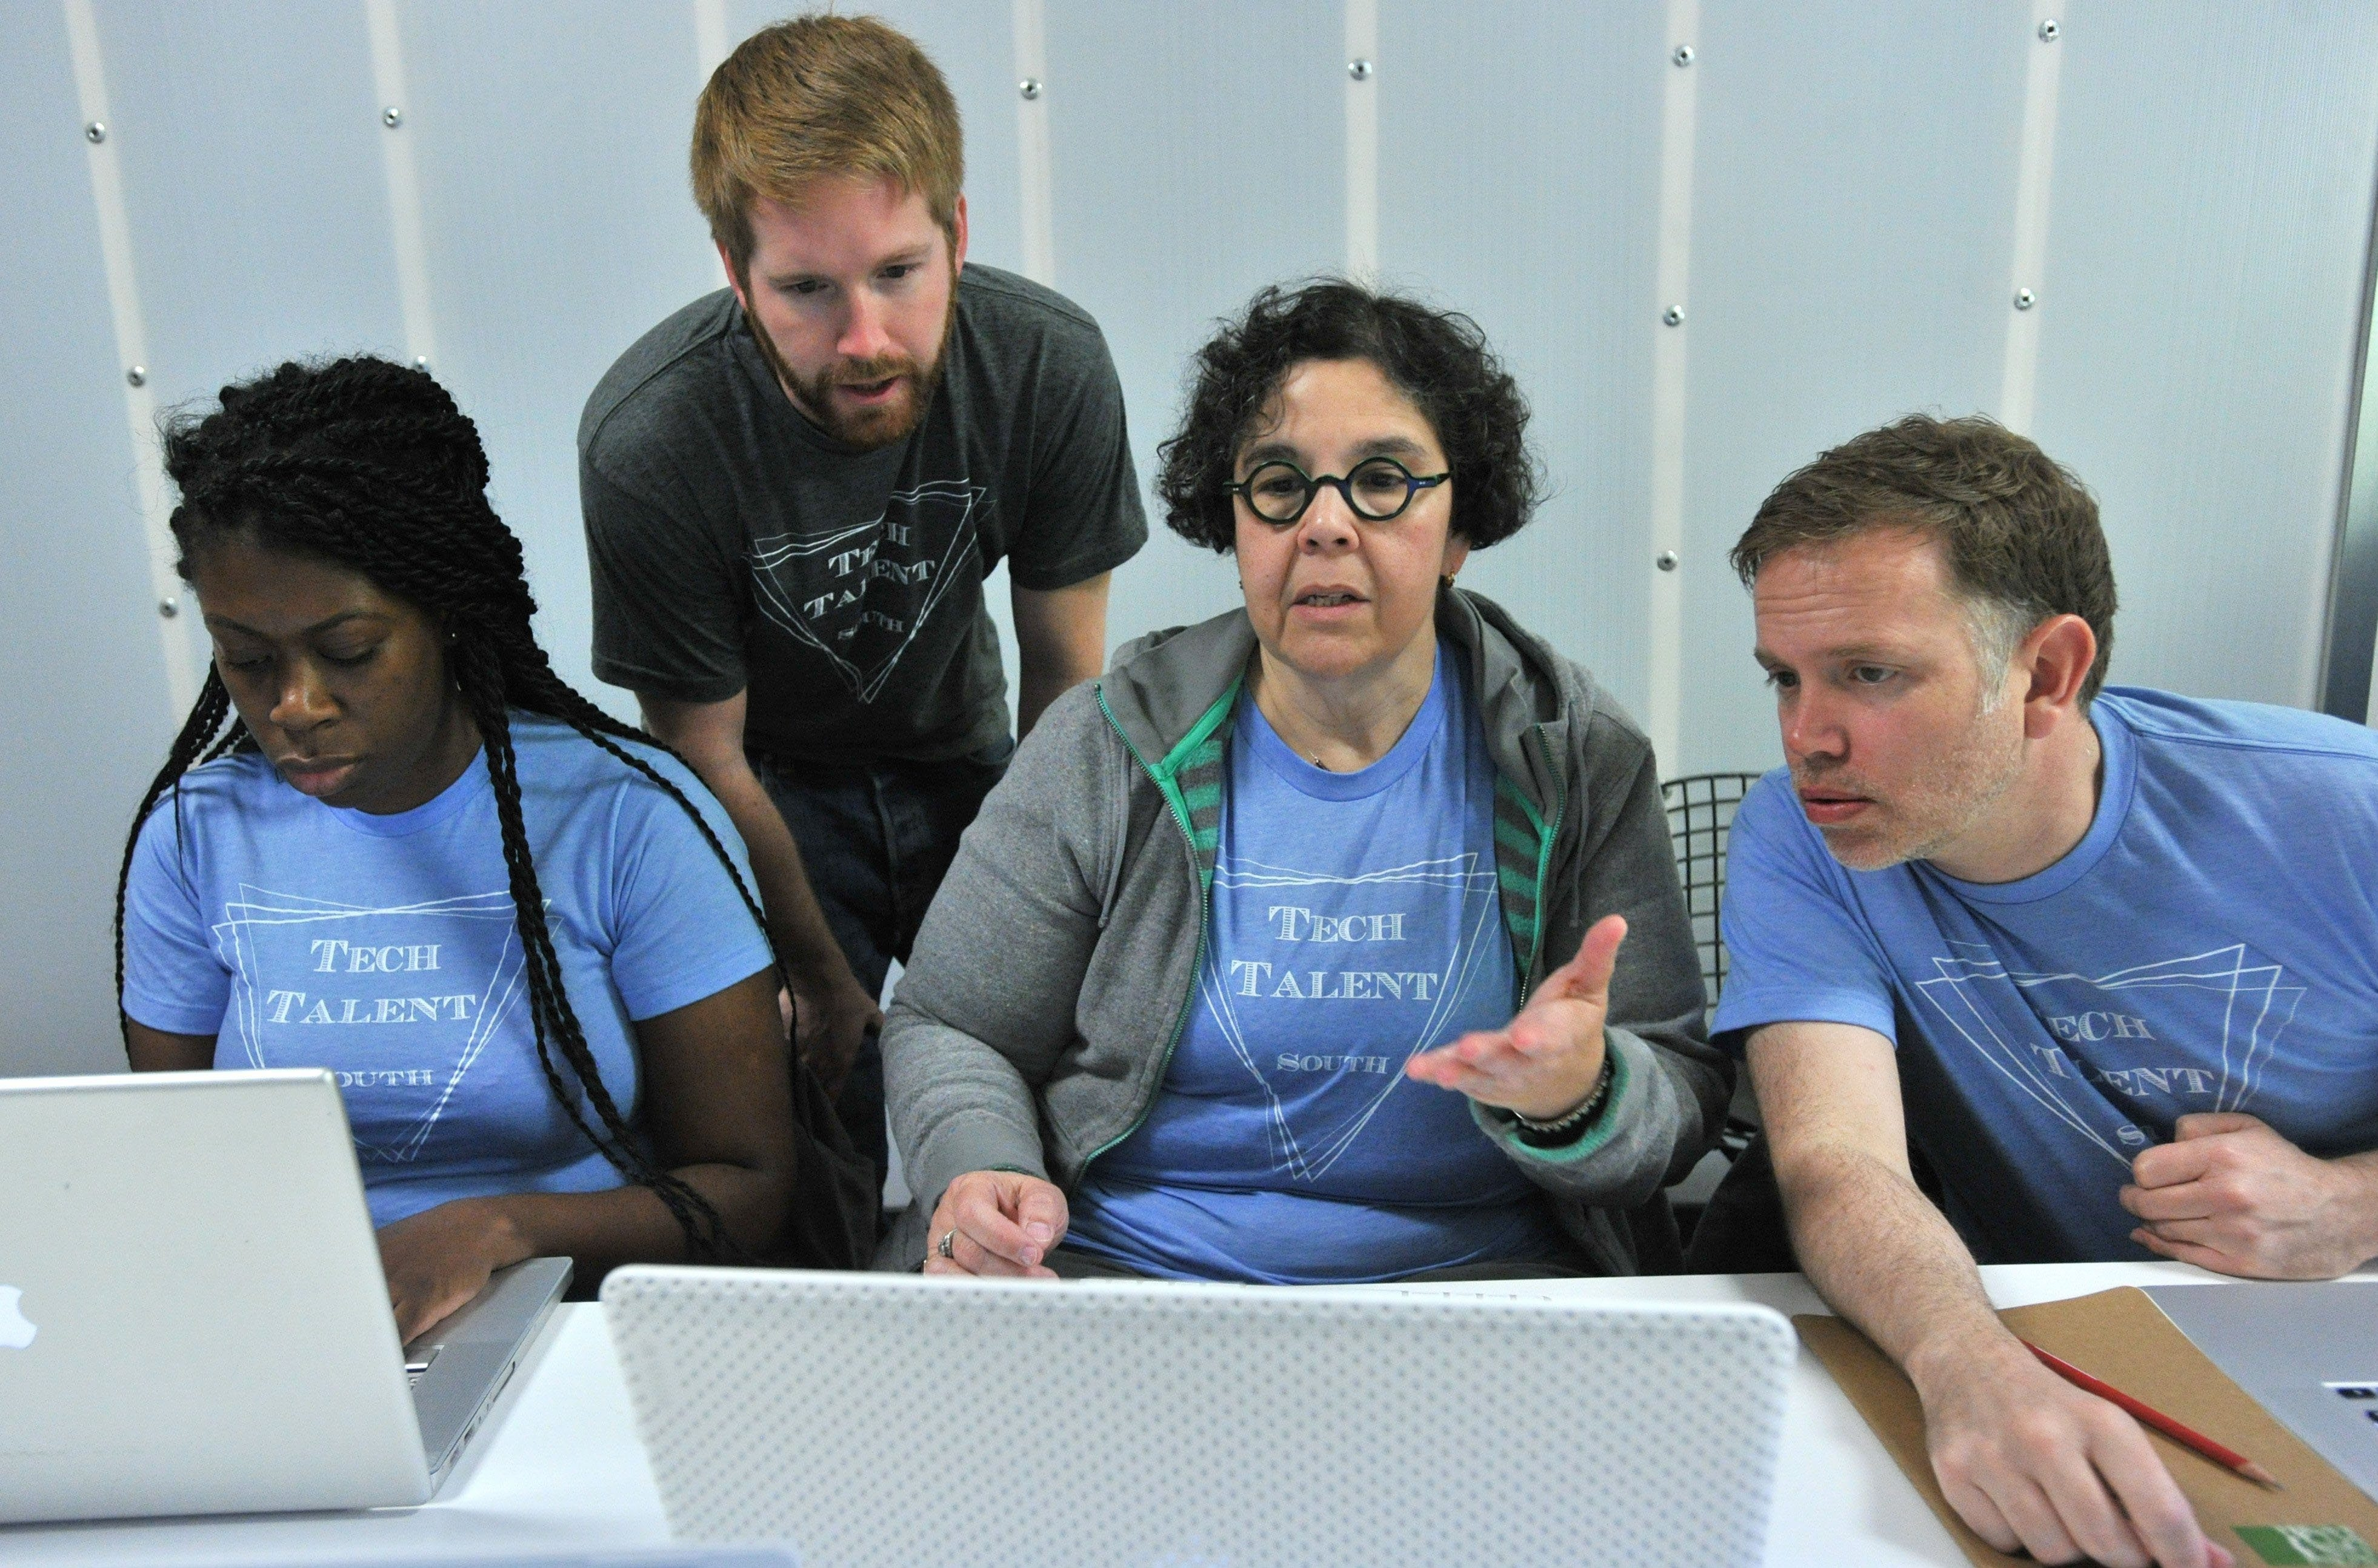 Richard Simms, standing, a co-founder of Tech Talent South, helps student Odette Colon, center, as other students Tammy Bowen, left, and Todd Brunsvold work on their project during Development Boot Camp at Tech Talent South in Old Fourth Ward on Feb. 26 in Atlanta.